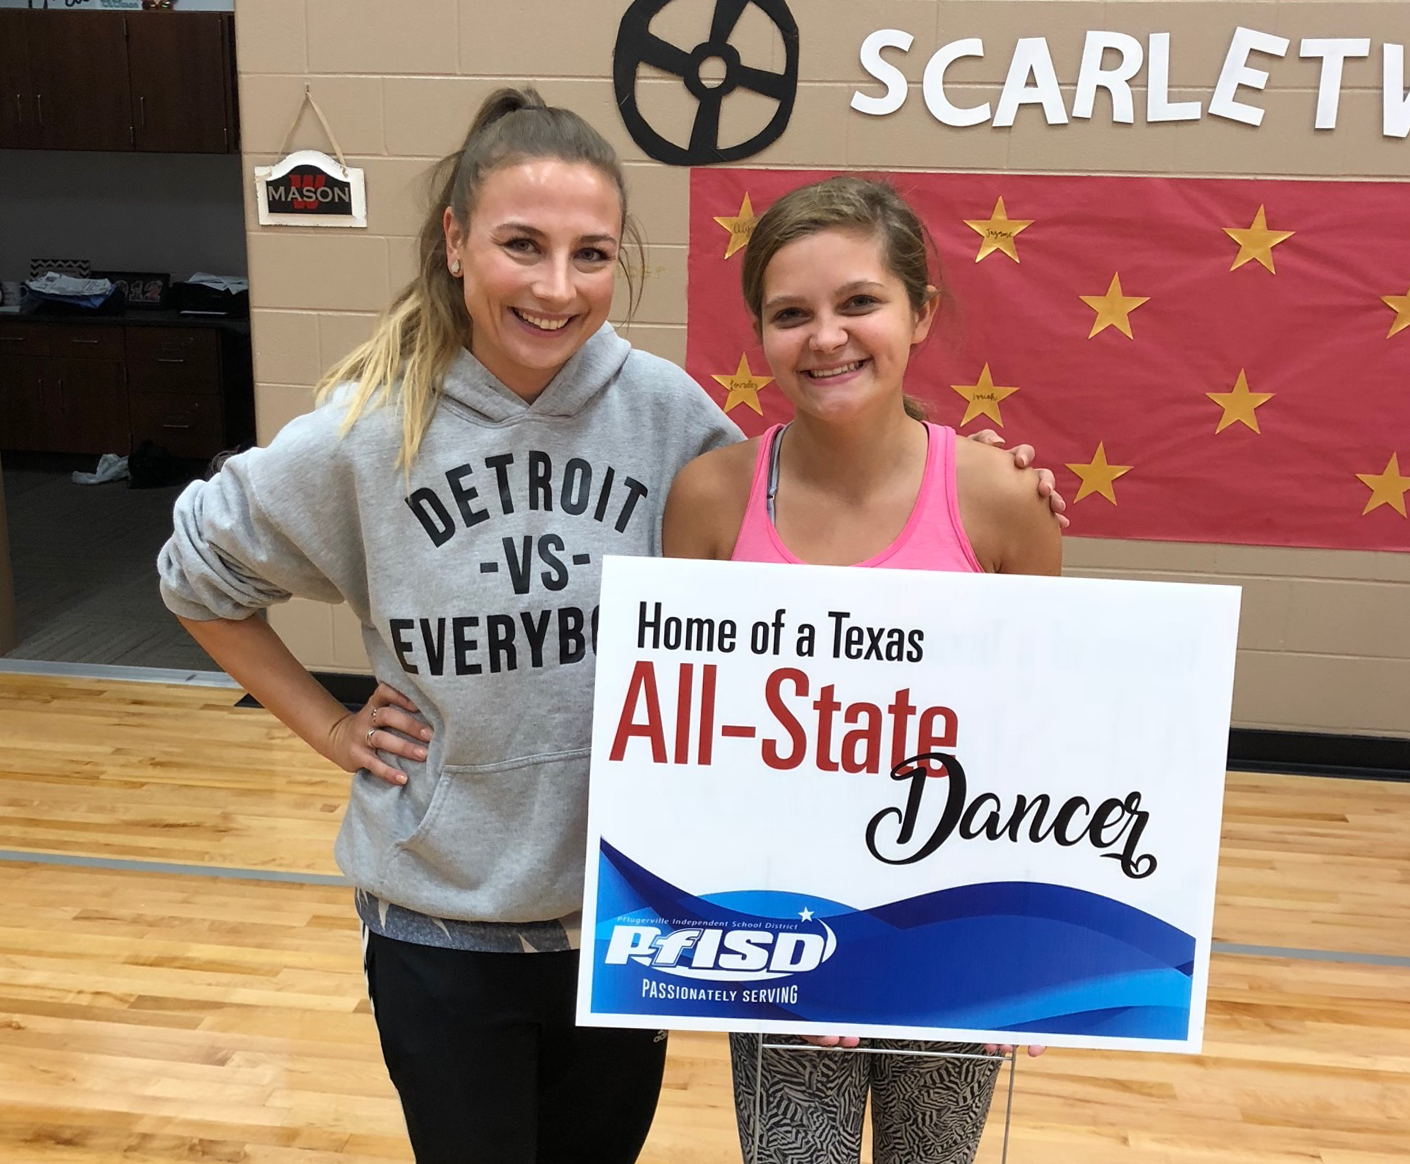 All-State Dance